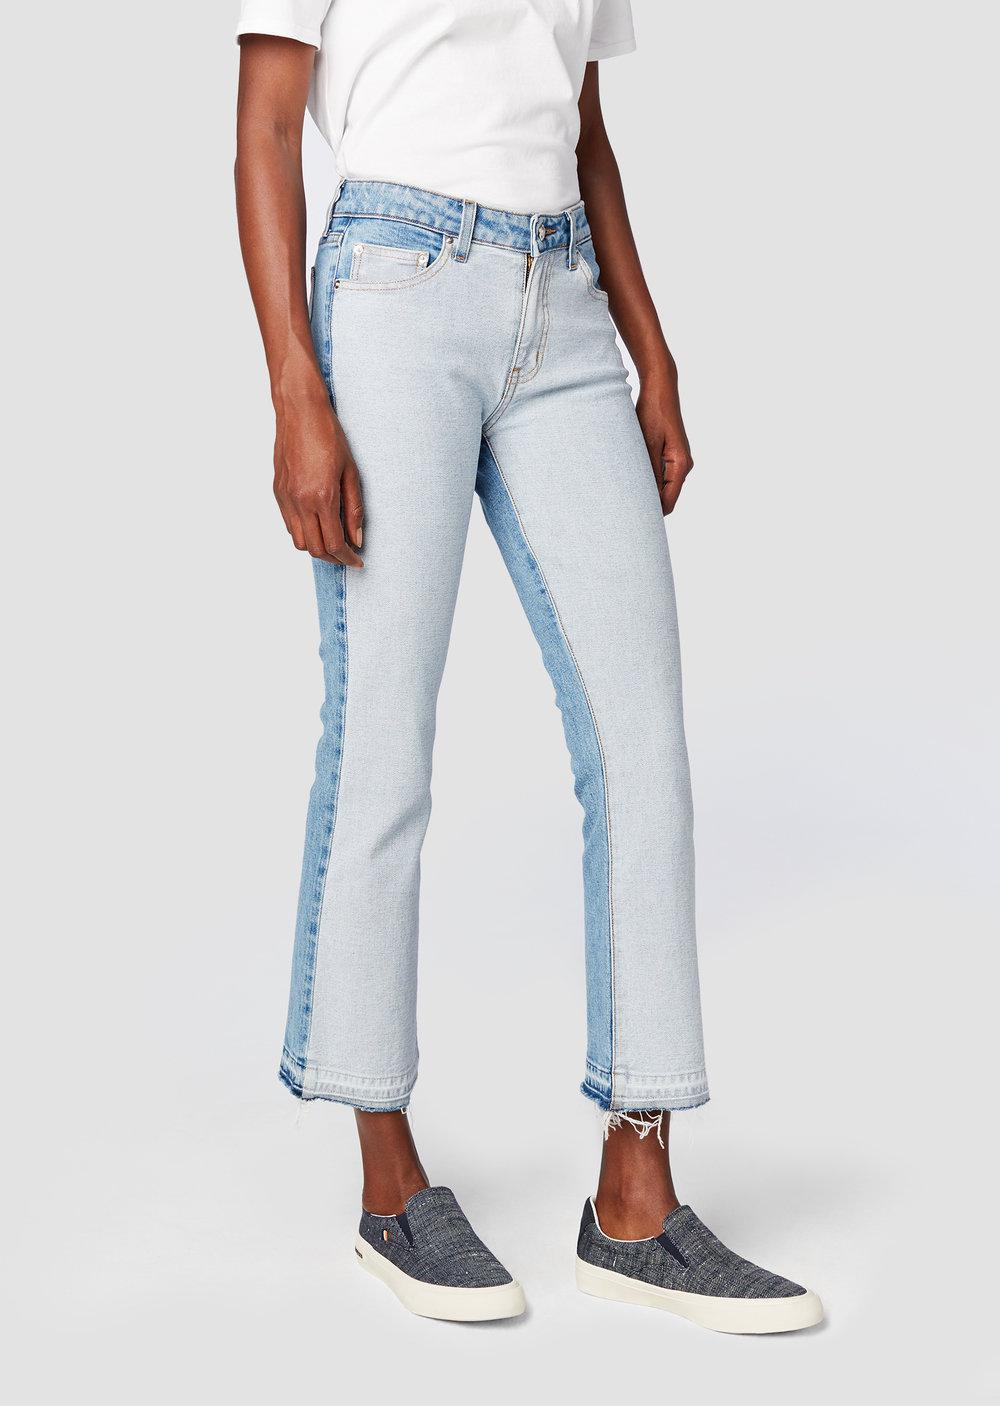 Sale Finishline Gia Mid-Rise Cropped Flare - White Derek Lam Release Dates Cheap Price oxwnC3Bh